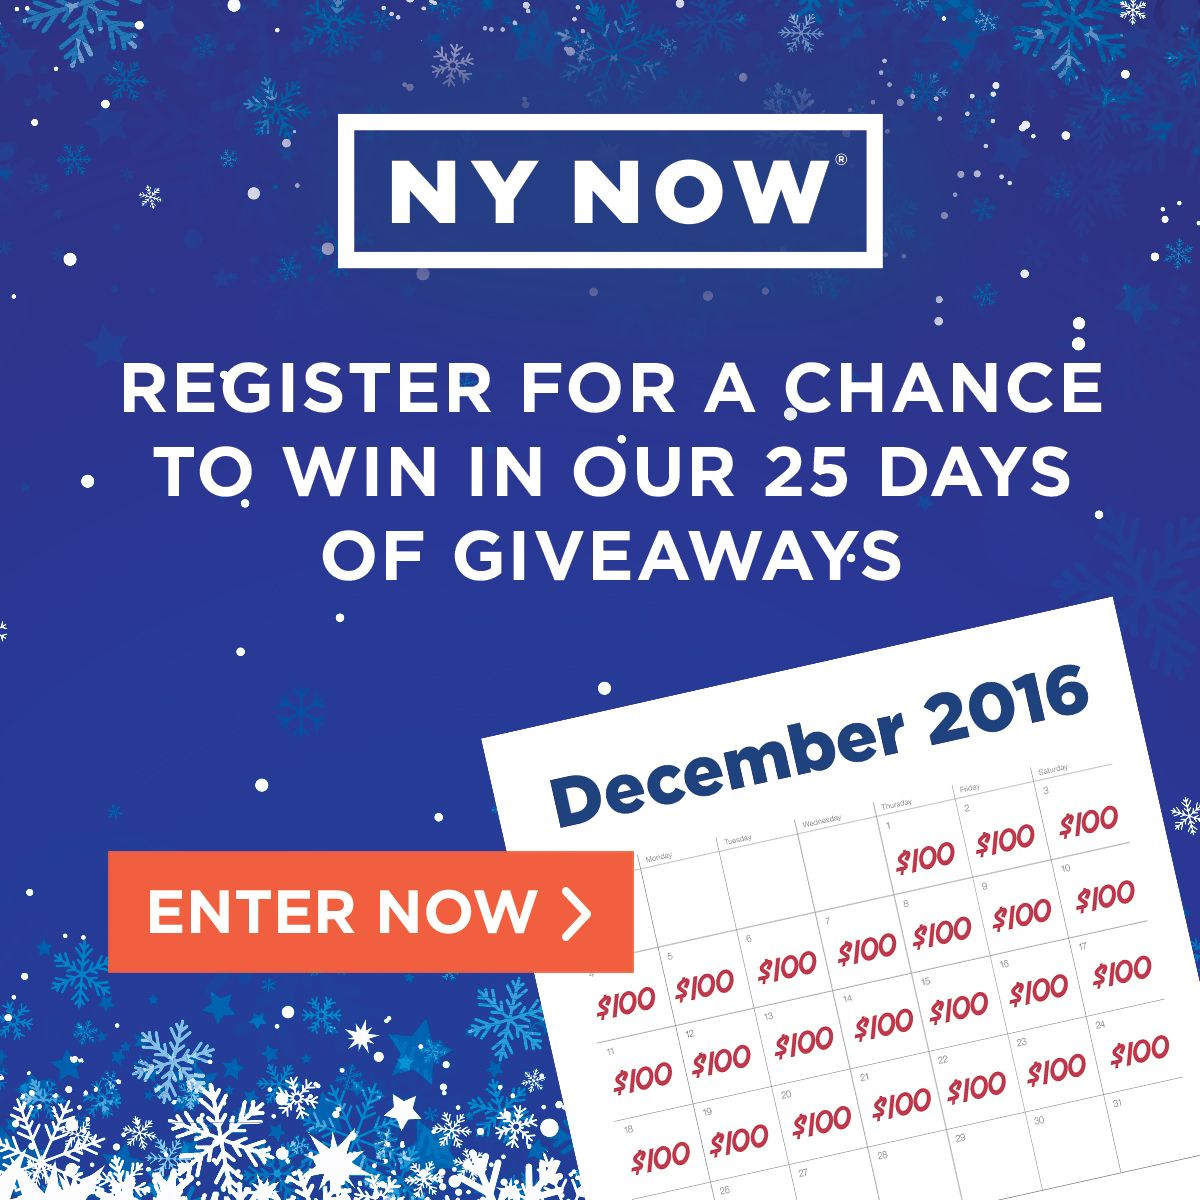 NY NOW is making spirits bright by giving away 25 $100 gift cards – register by 12/25 for a chance to win! (Sponsored)